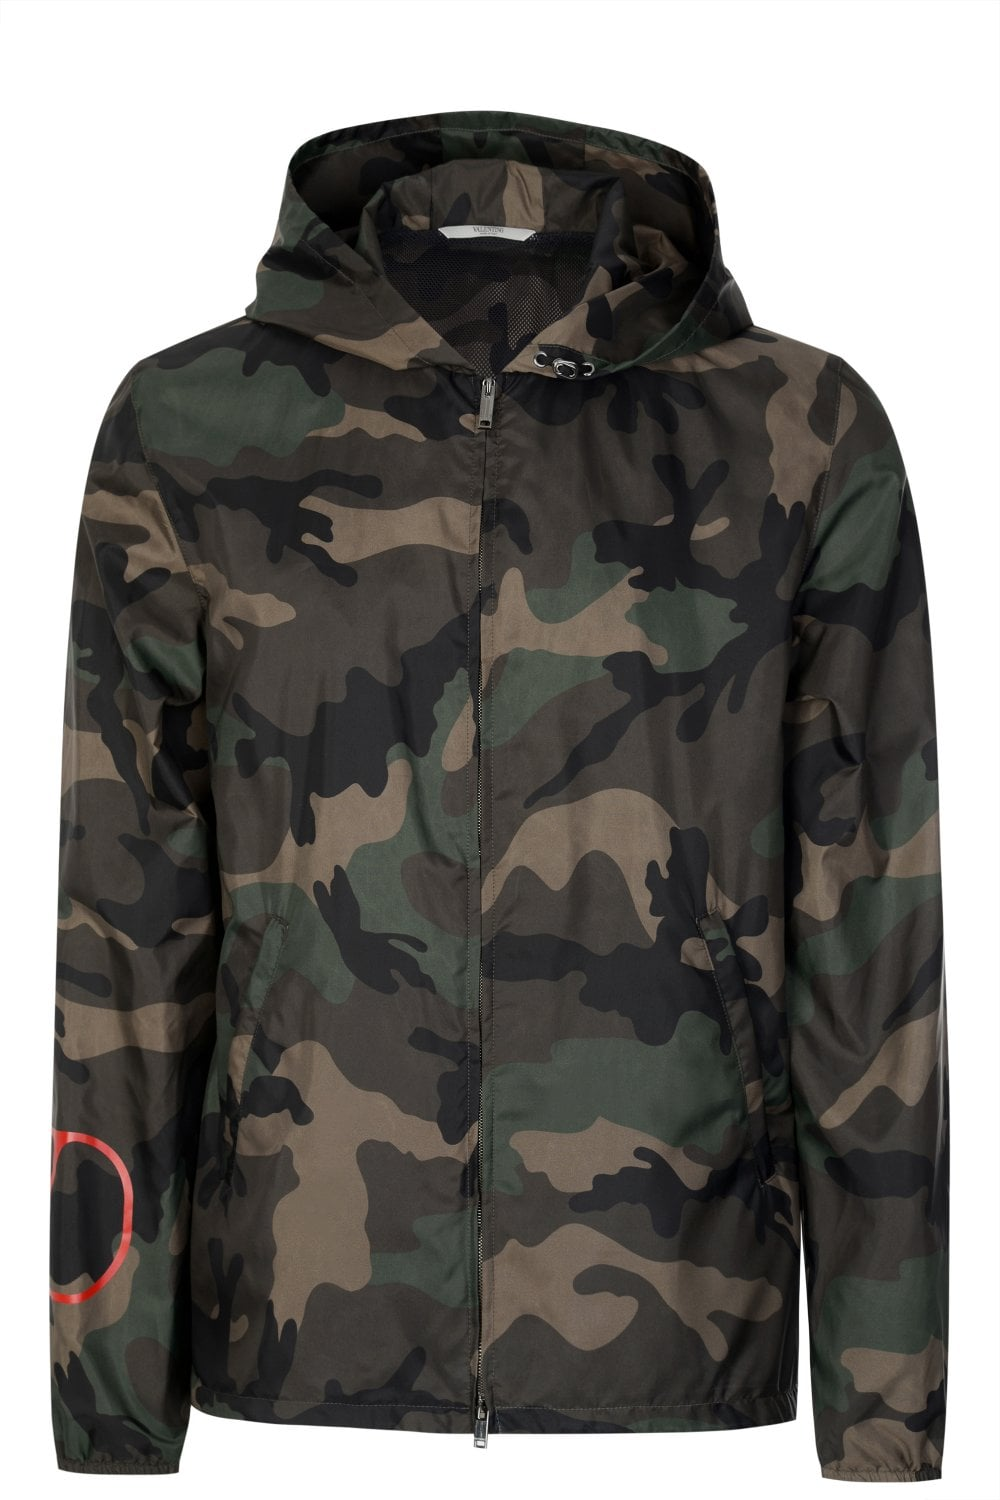 various kinds of buying now sneakers V Logo Camouflage Windbreaker Jacket